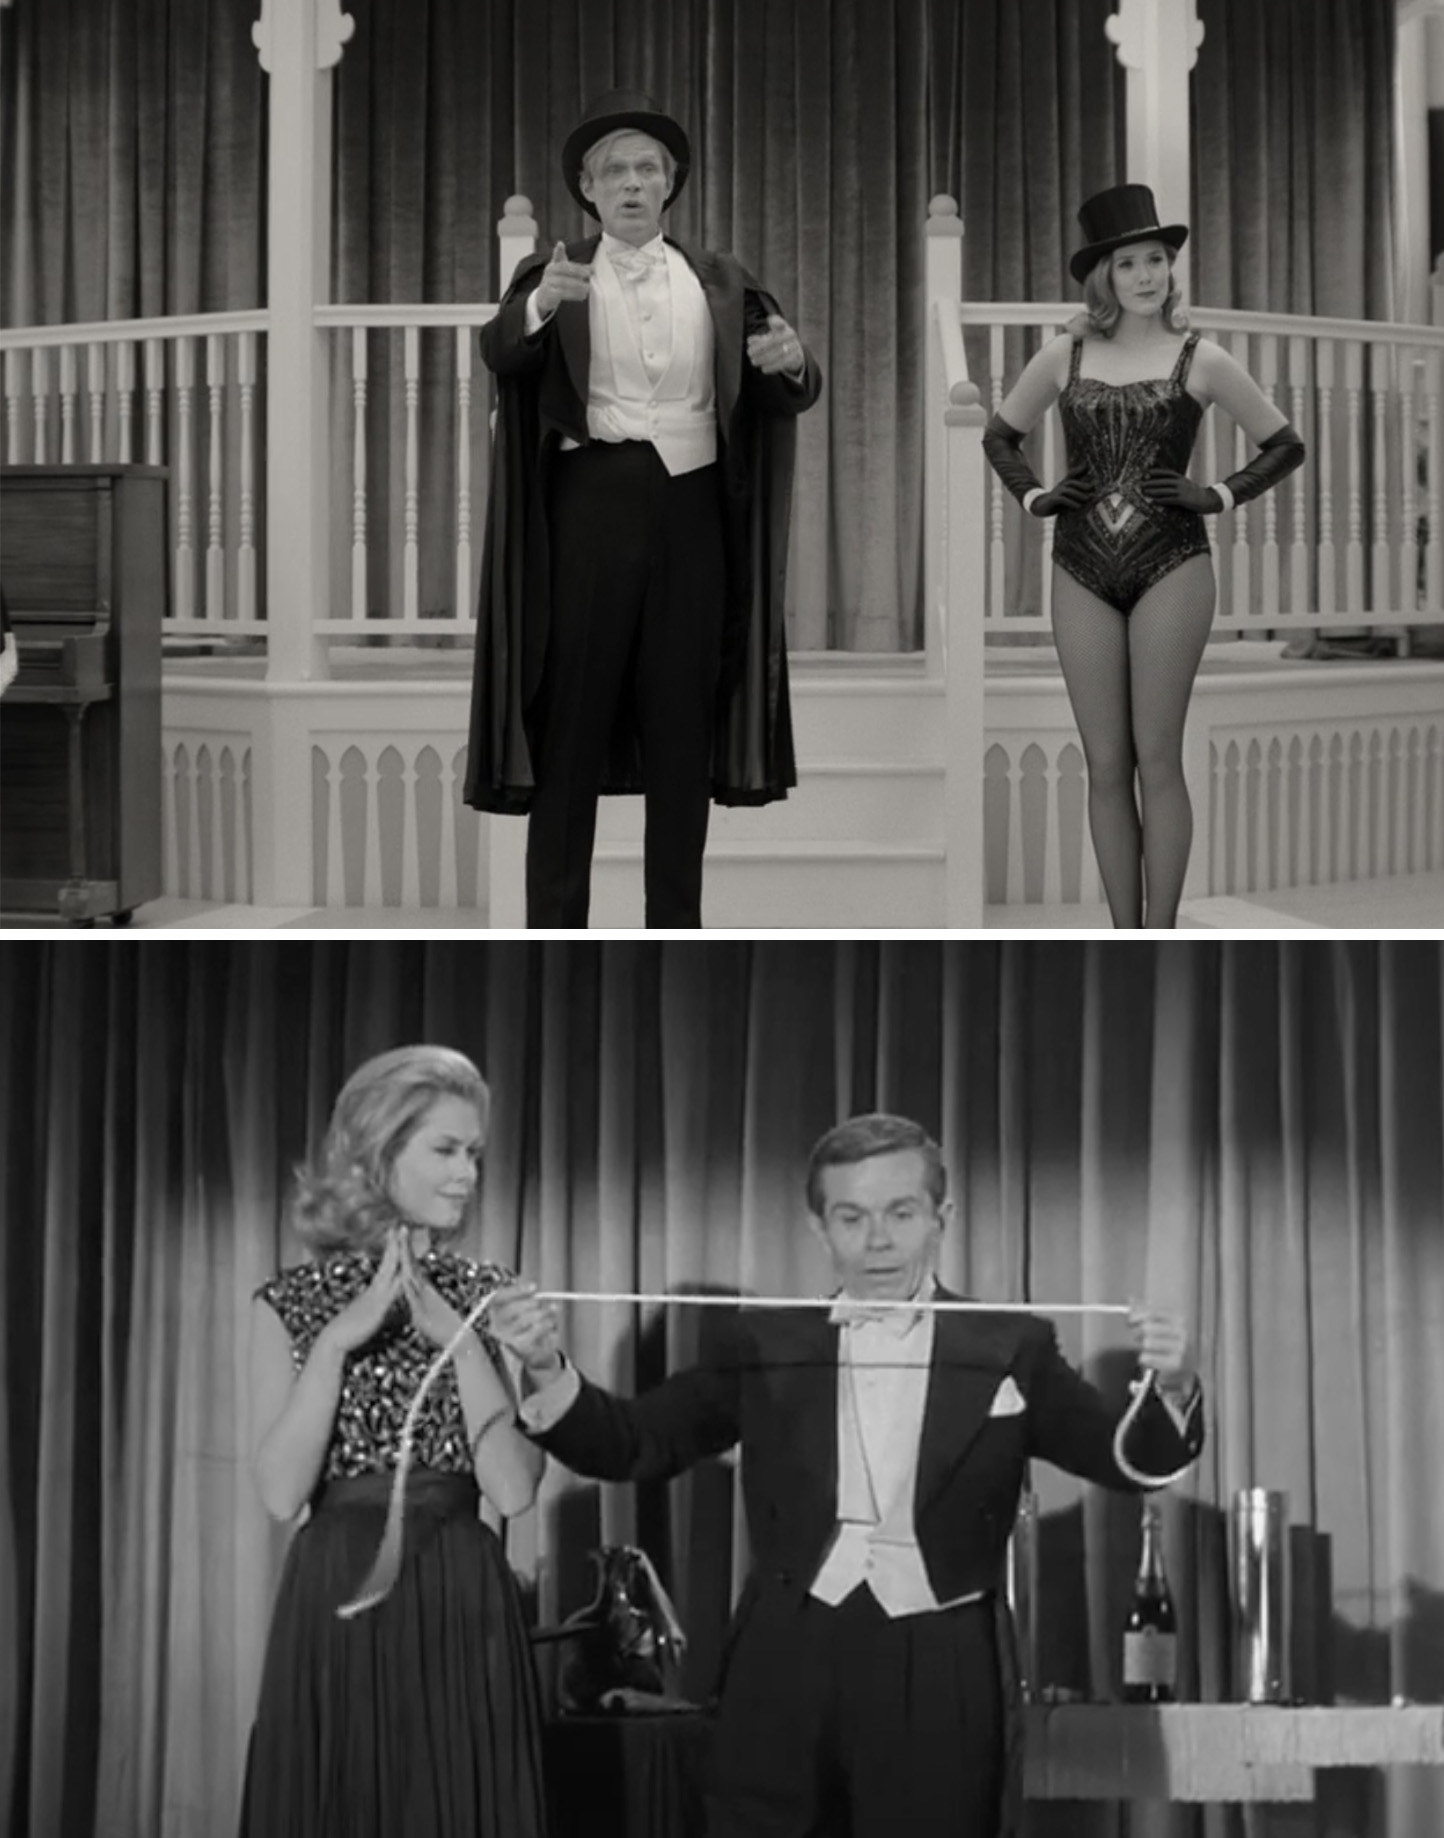 """Wanda standing next to Vision while performing magic vs. Samantha helping a magician fix a piece of rope on """"Bewitched"""""""